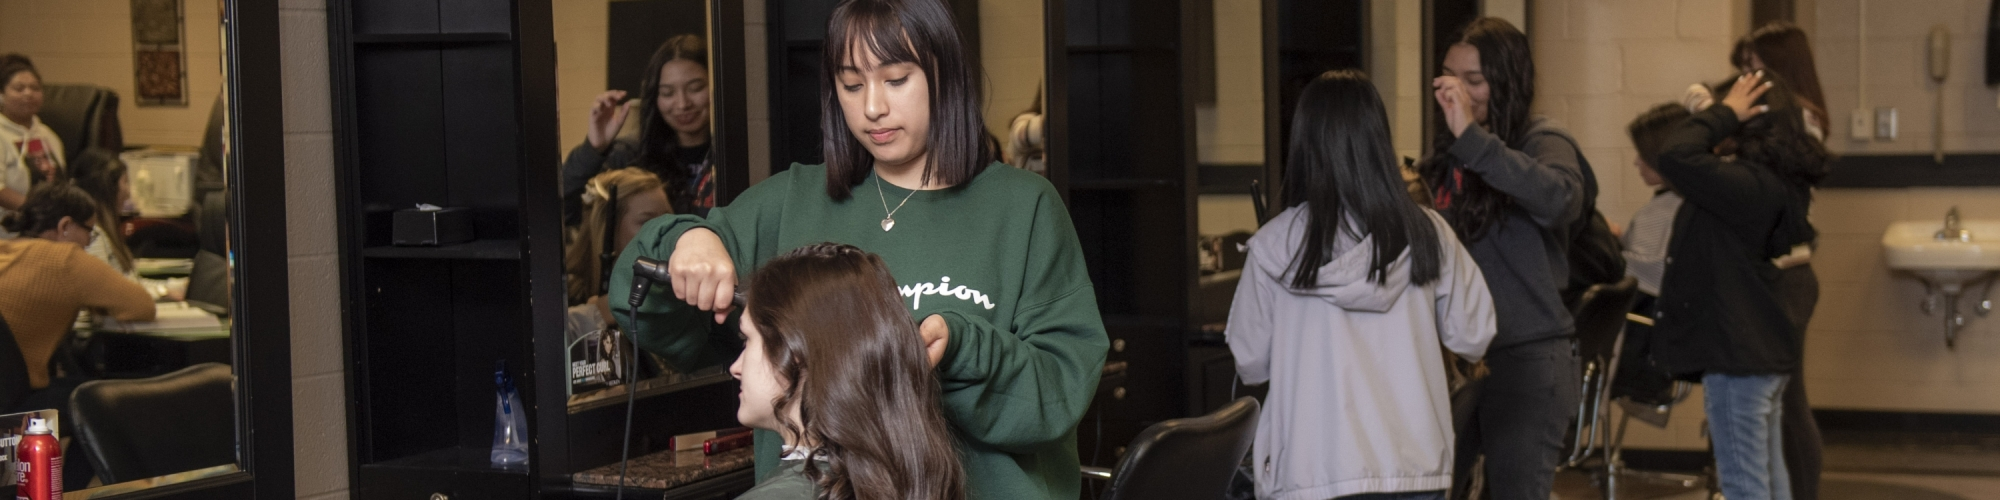 Students in Cosmetology class - curling hair